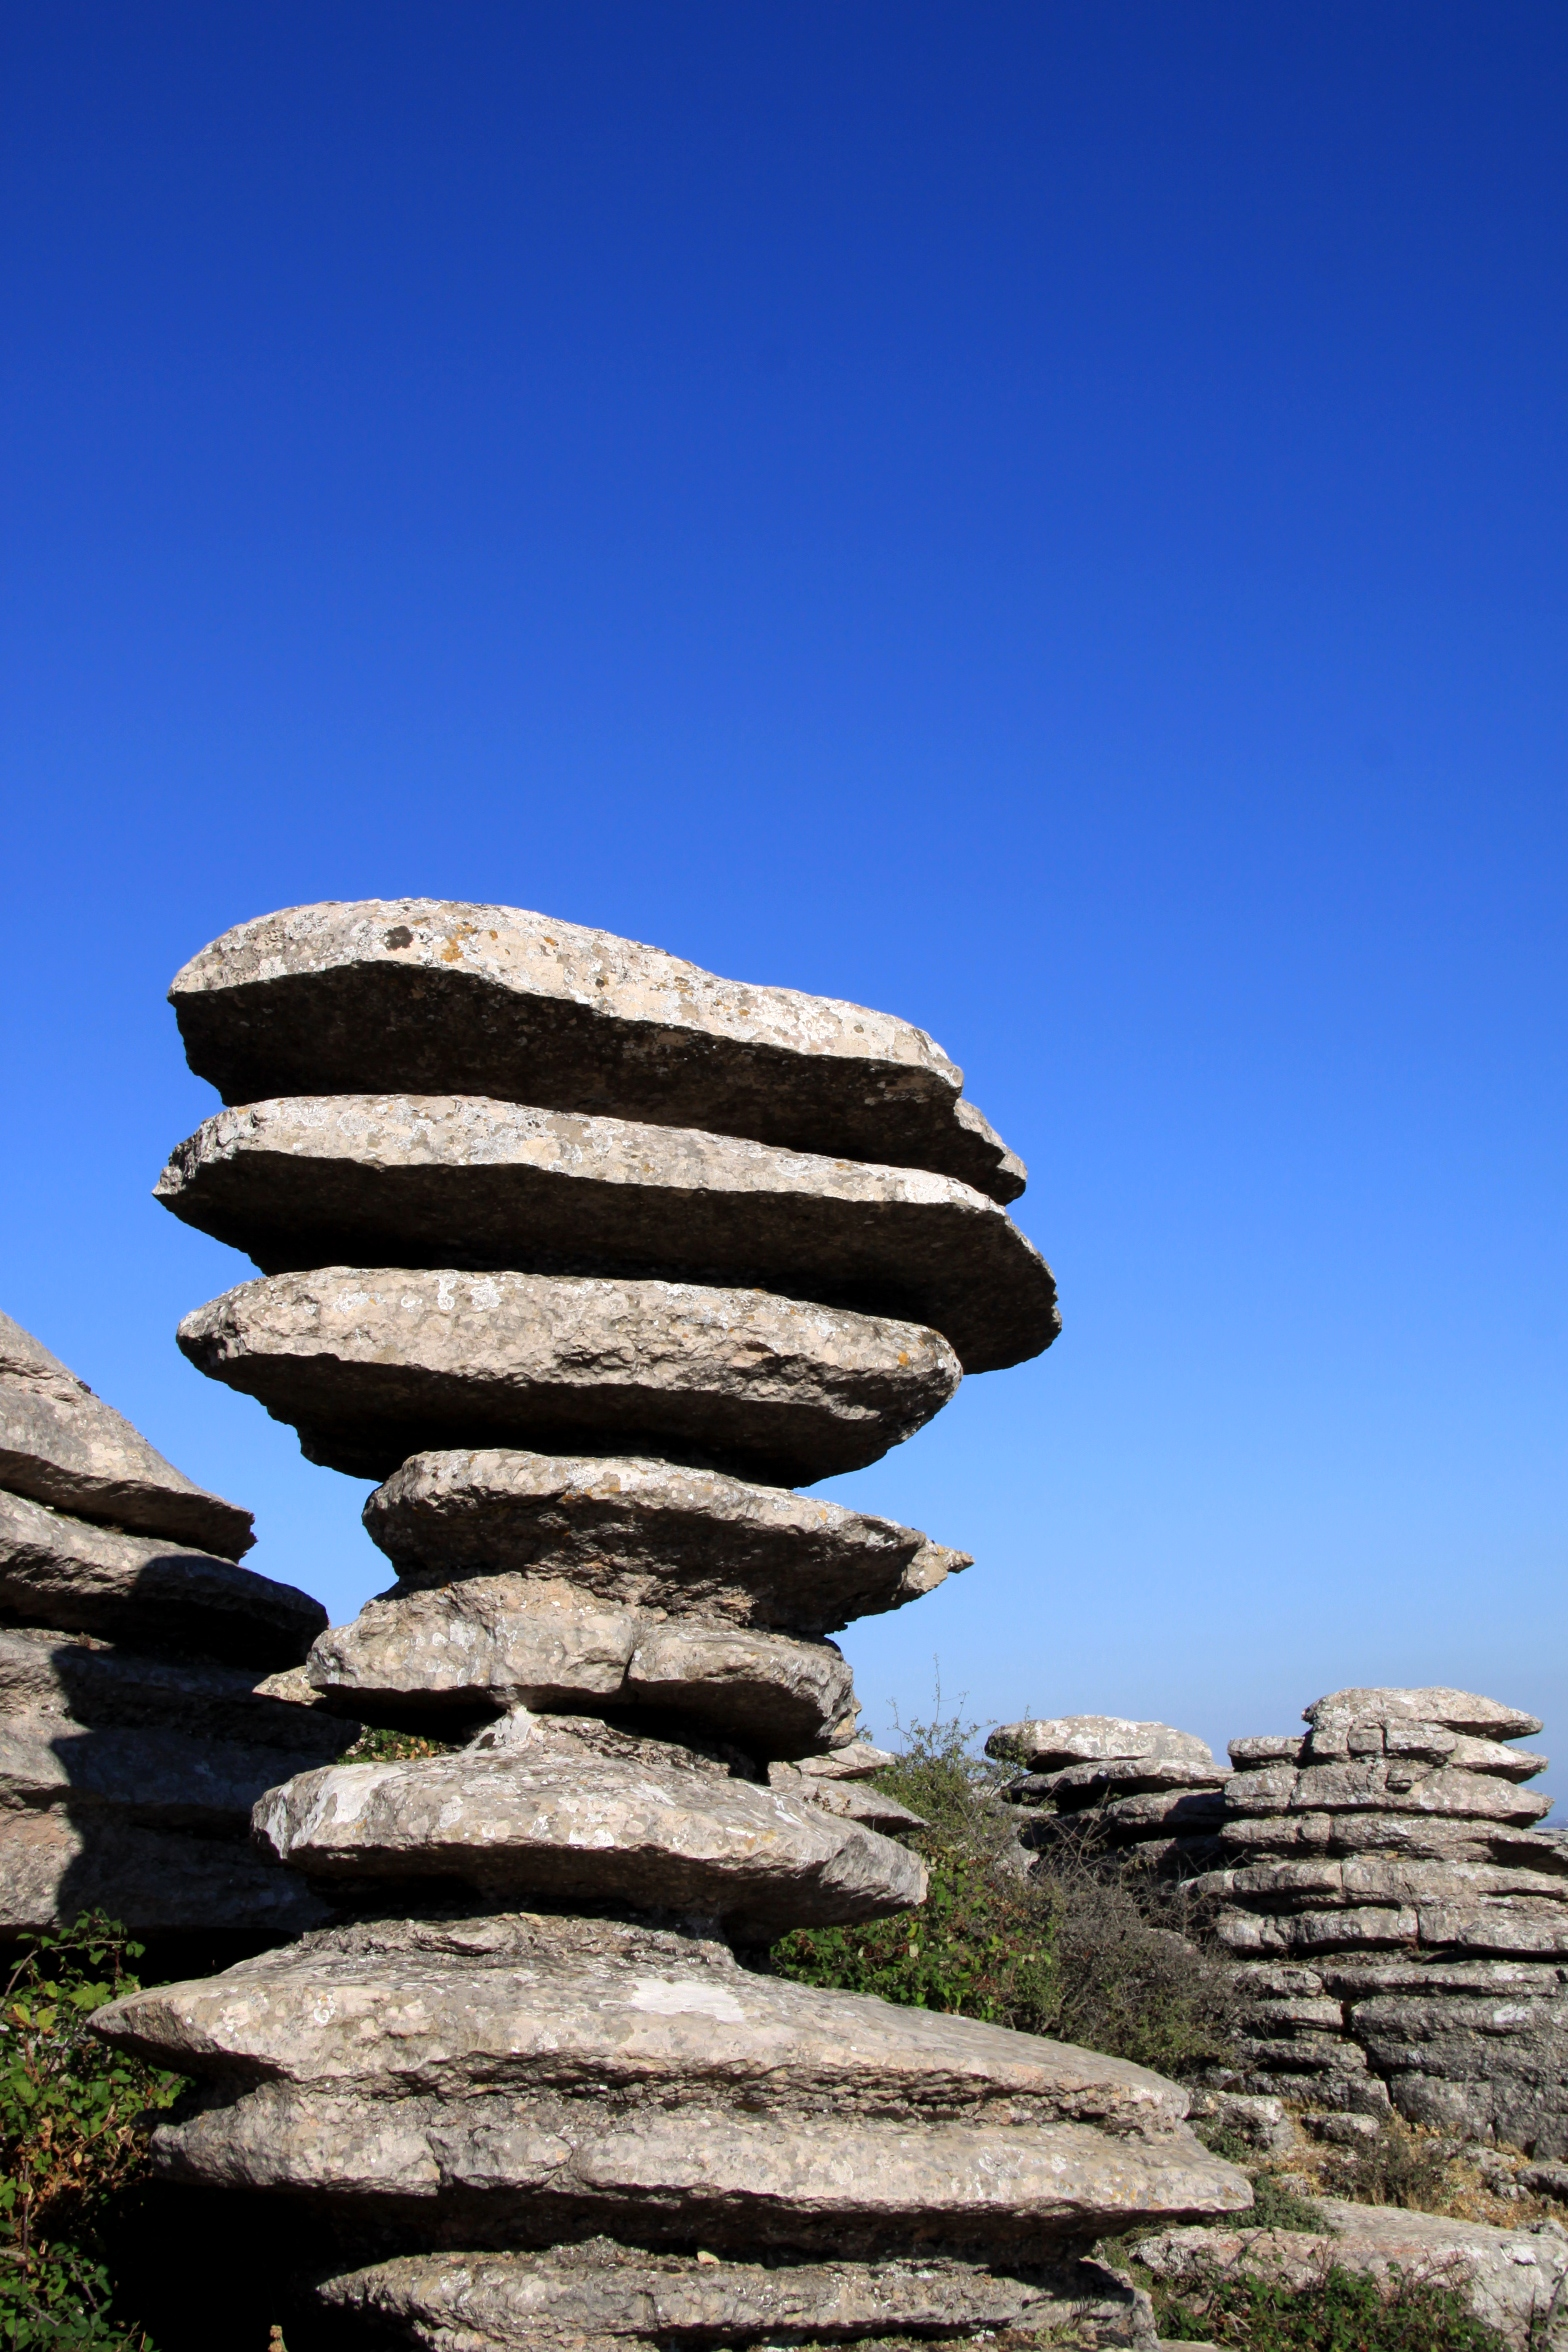 El_Torcal_Antequera_andalucia_andrew_forbes_el-tornillo_the_screw